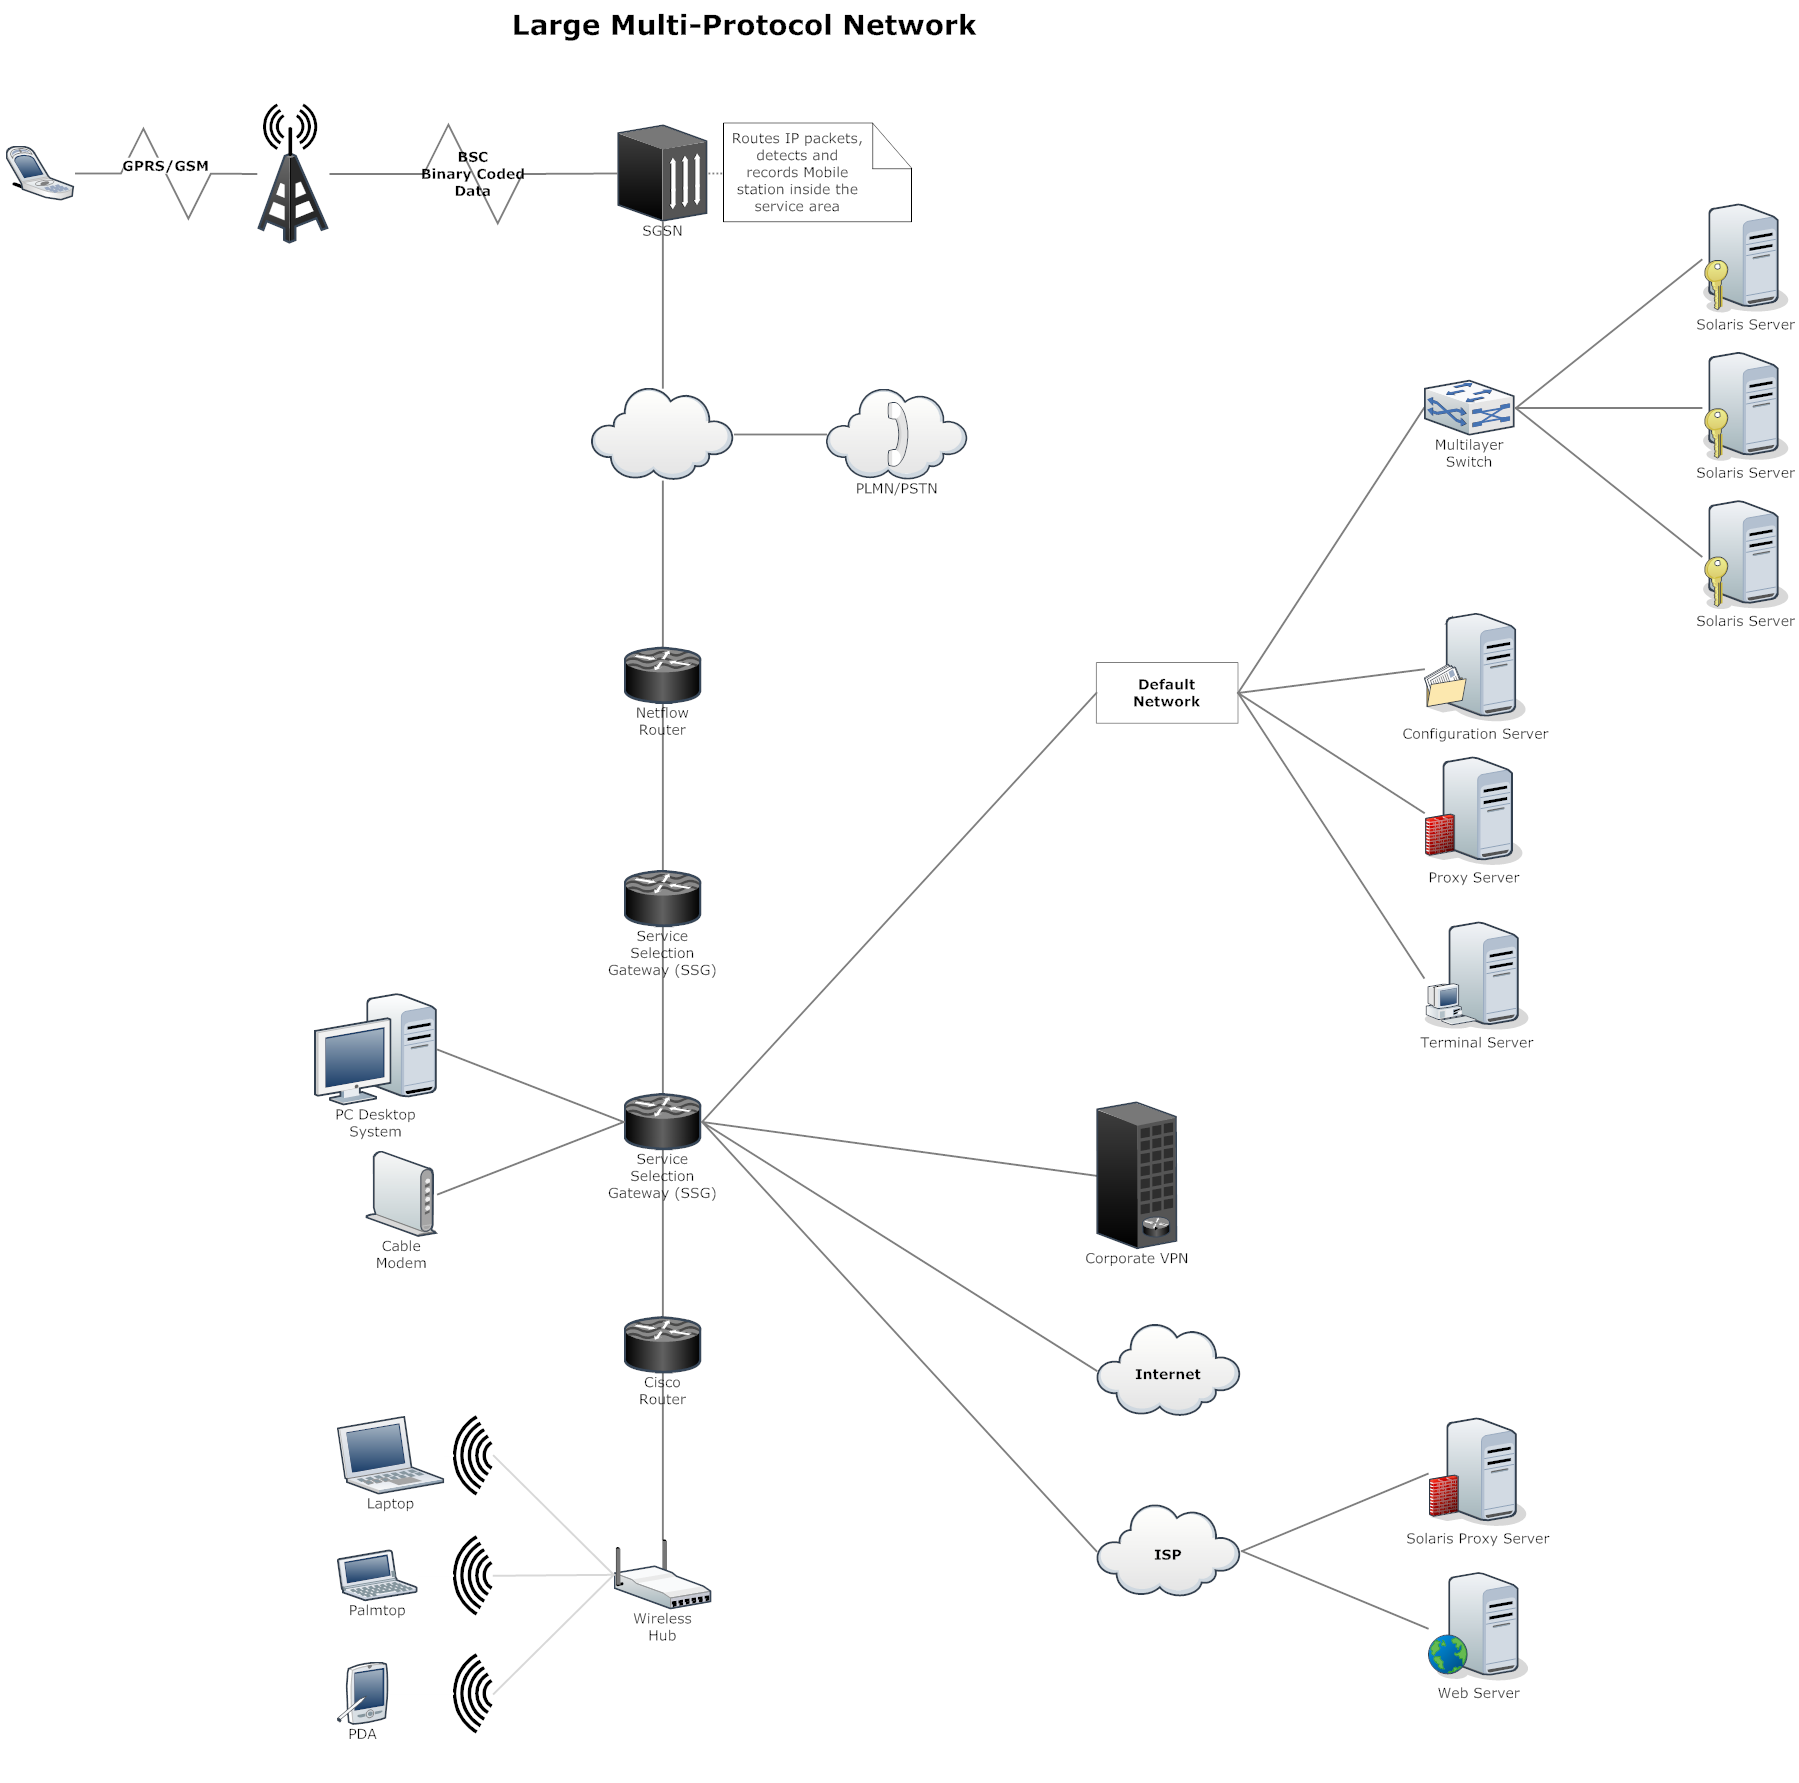 small resolution of network diagram example large multi protocol network